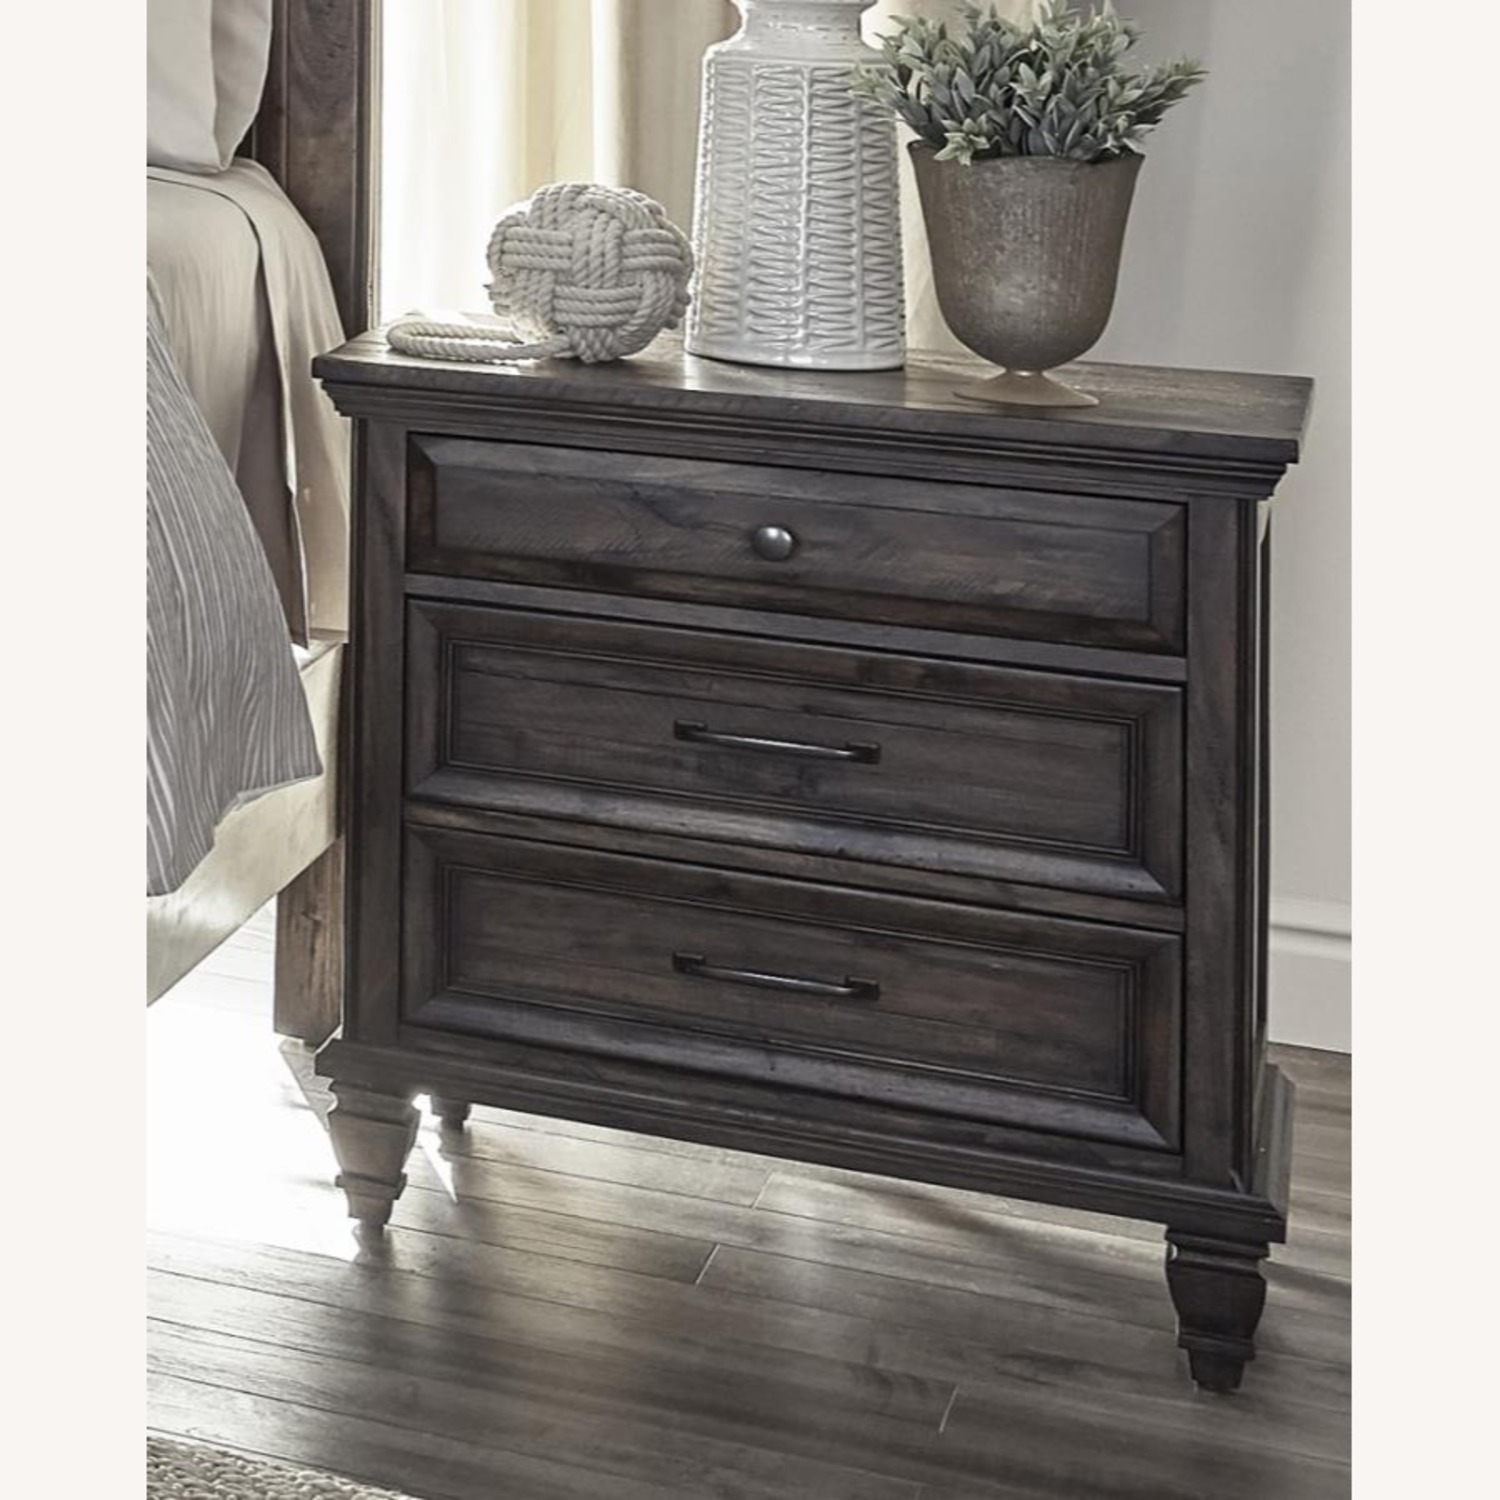 Nightstand W/ USB Port In Weathered Brown Finish - image-0